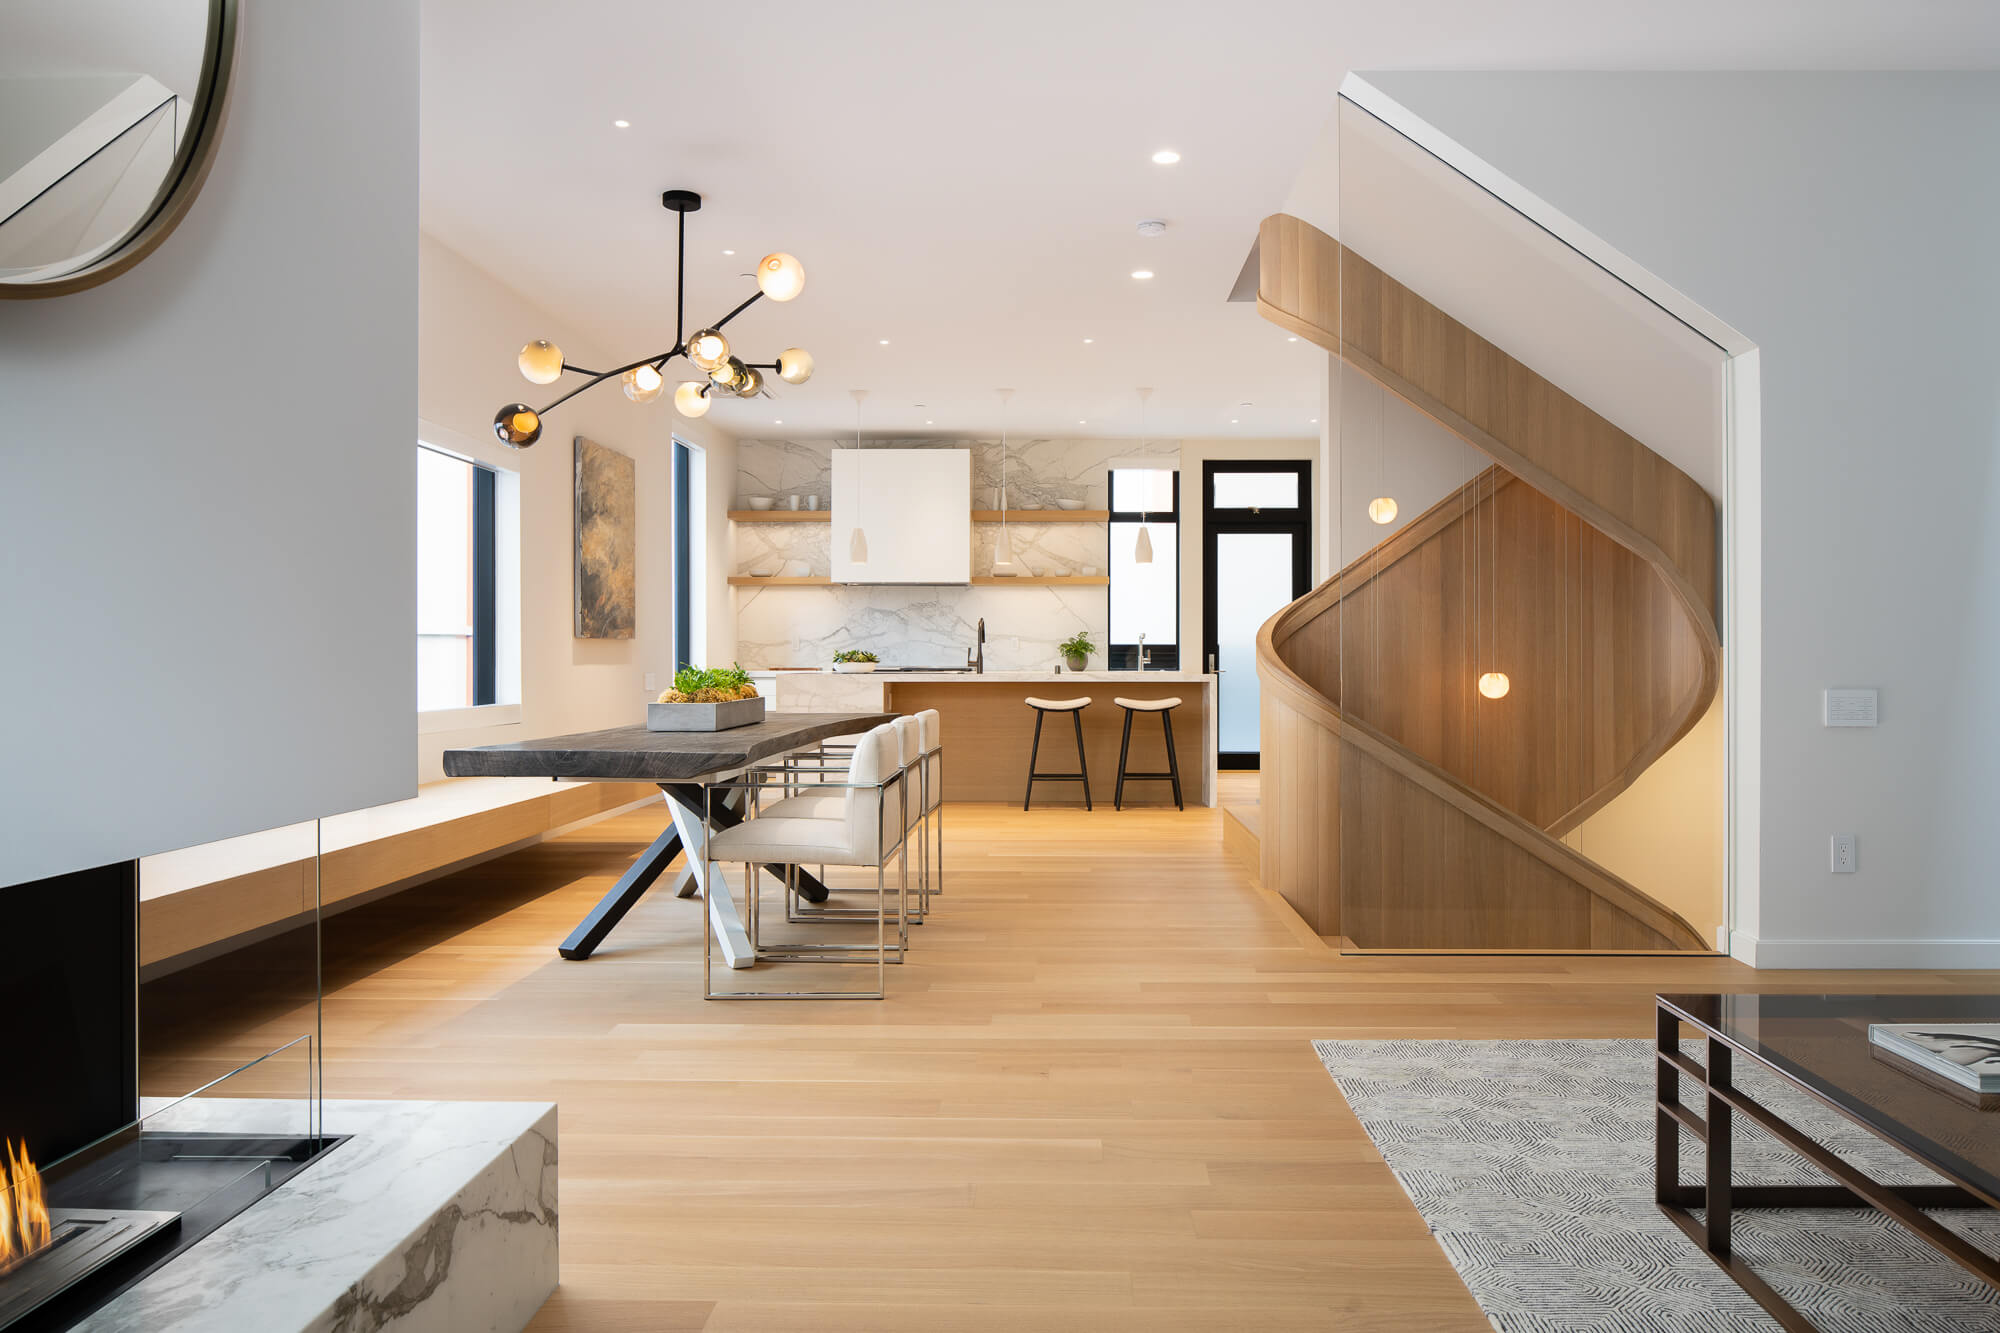 Rift sawn white oak flooring in living room and on spiraling staircase in townhome.